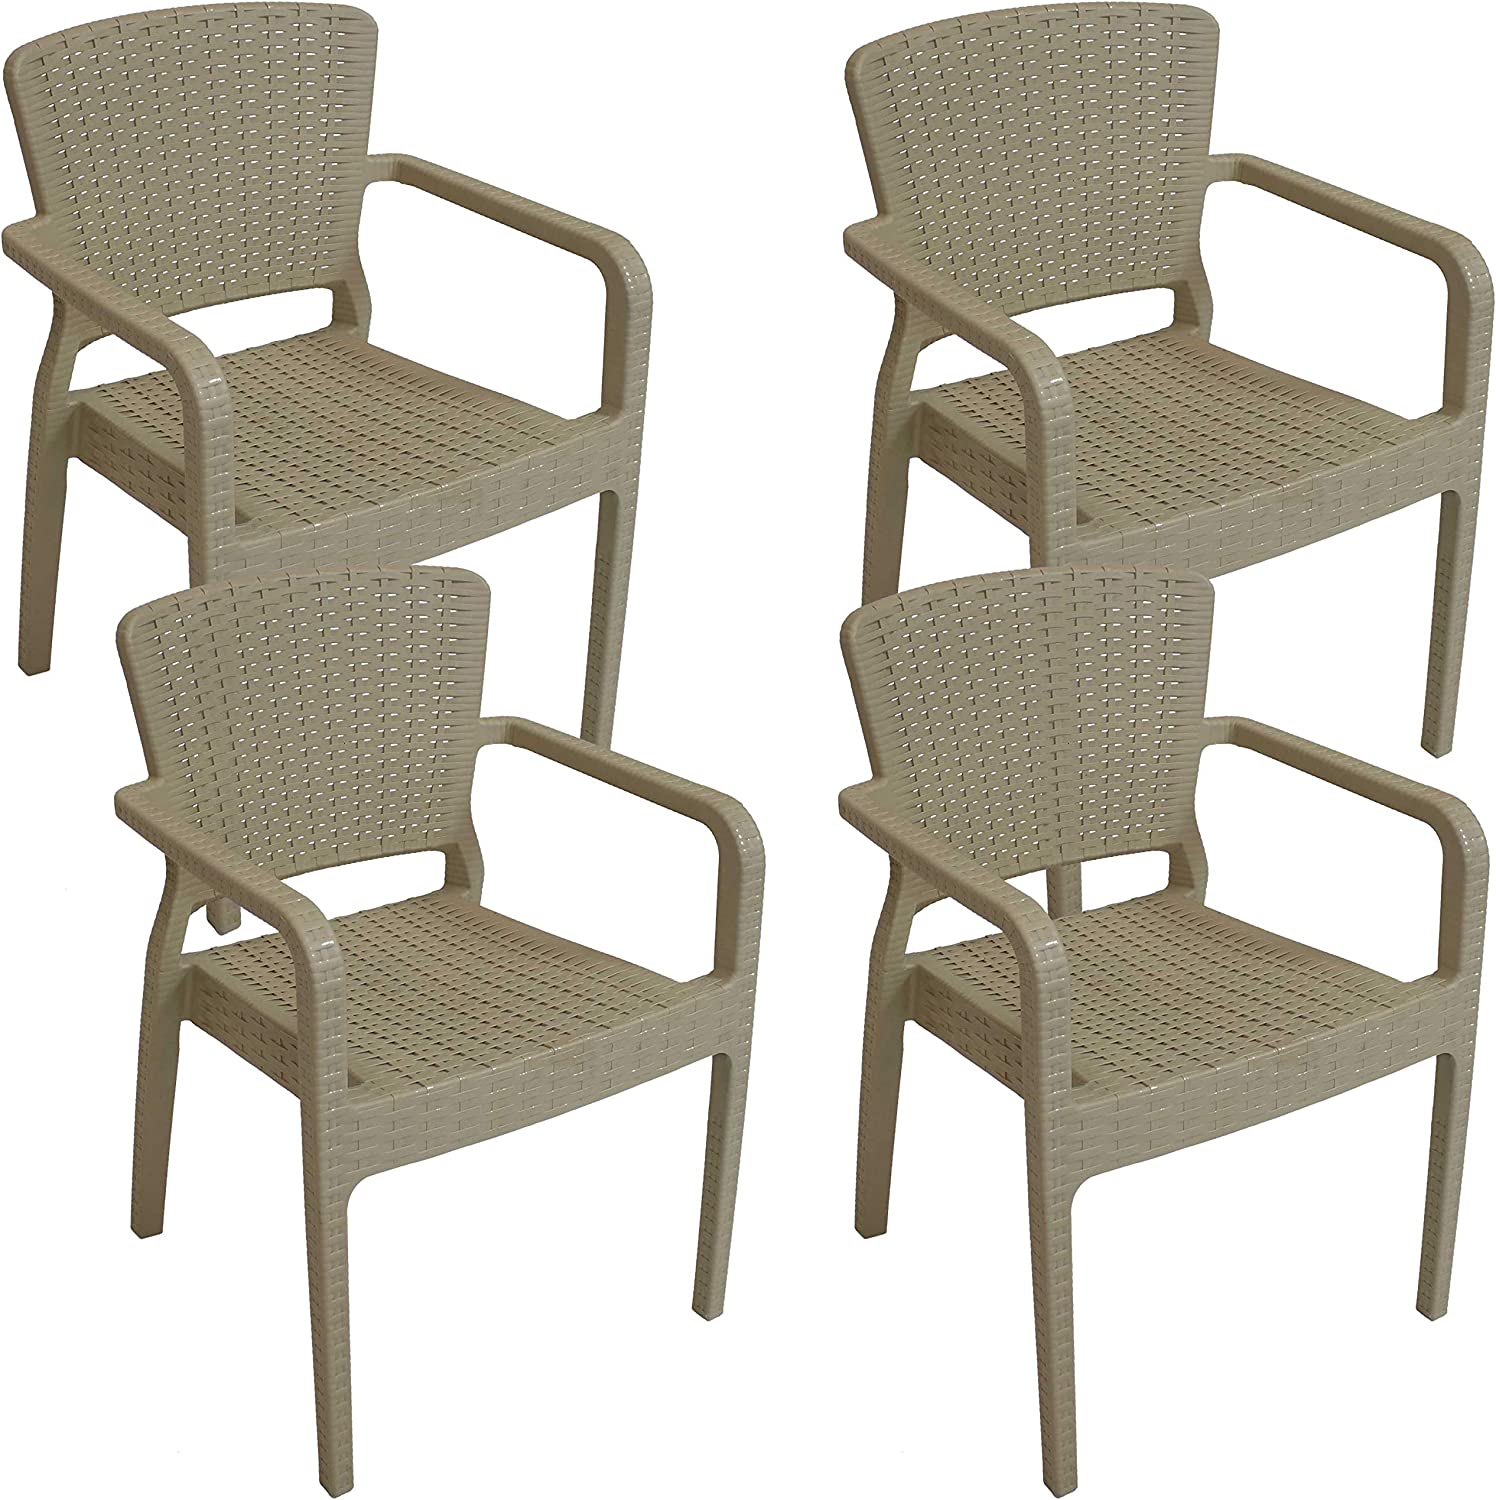 Sunnydaze Segonia Plastic Outdoor Dining Chair - Faux Wicker Rattan Design  Armchair - Commercial Grade All-Weather Patio Lawn and Garden Chair -